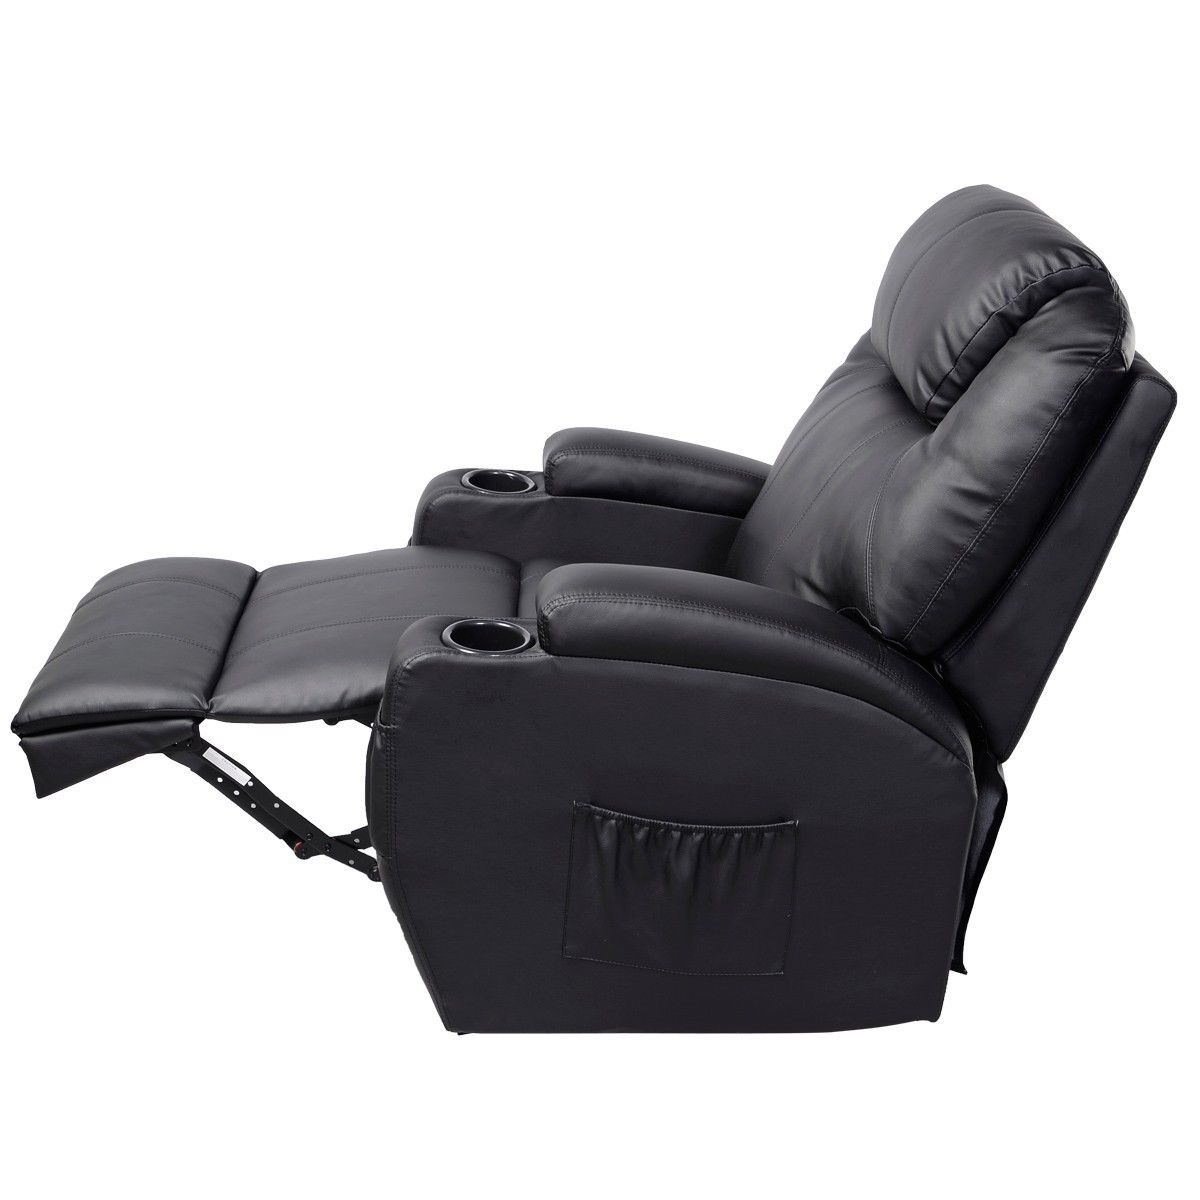 Giantex Electric Massage Chair Leather Recliner Sofa Chair Modern